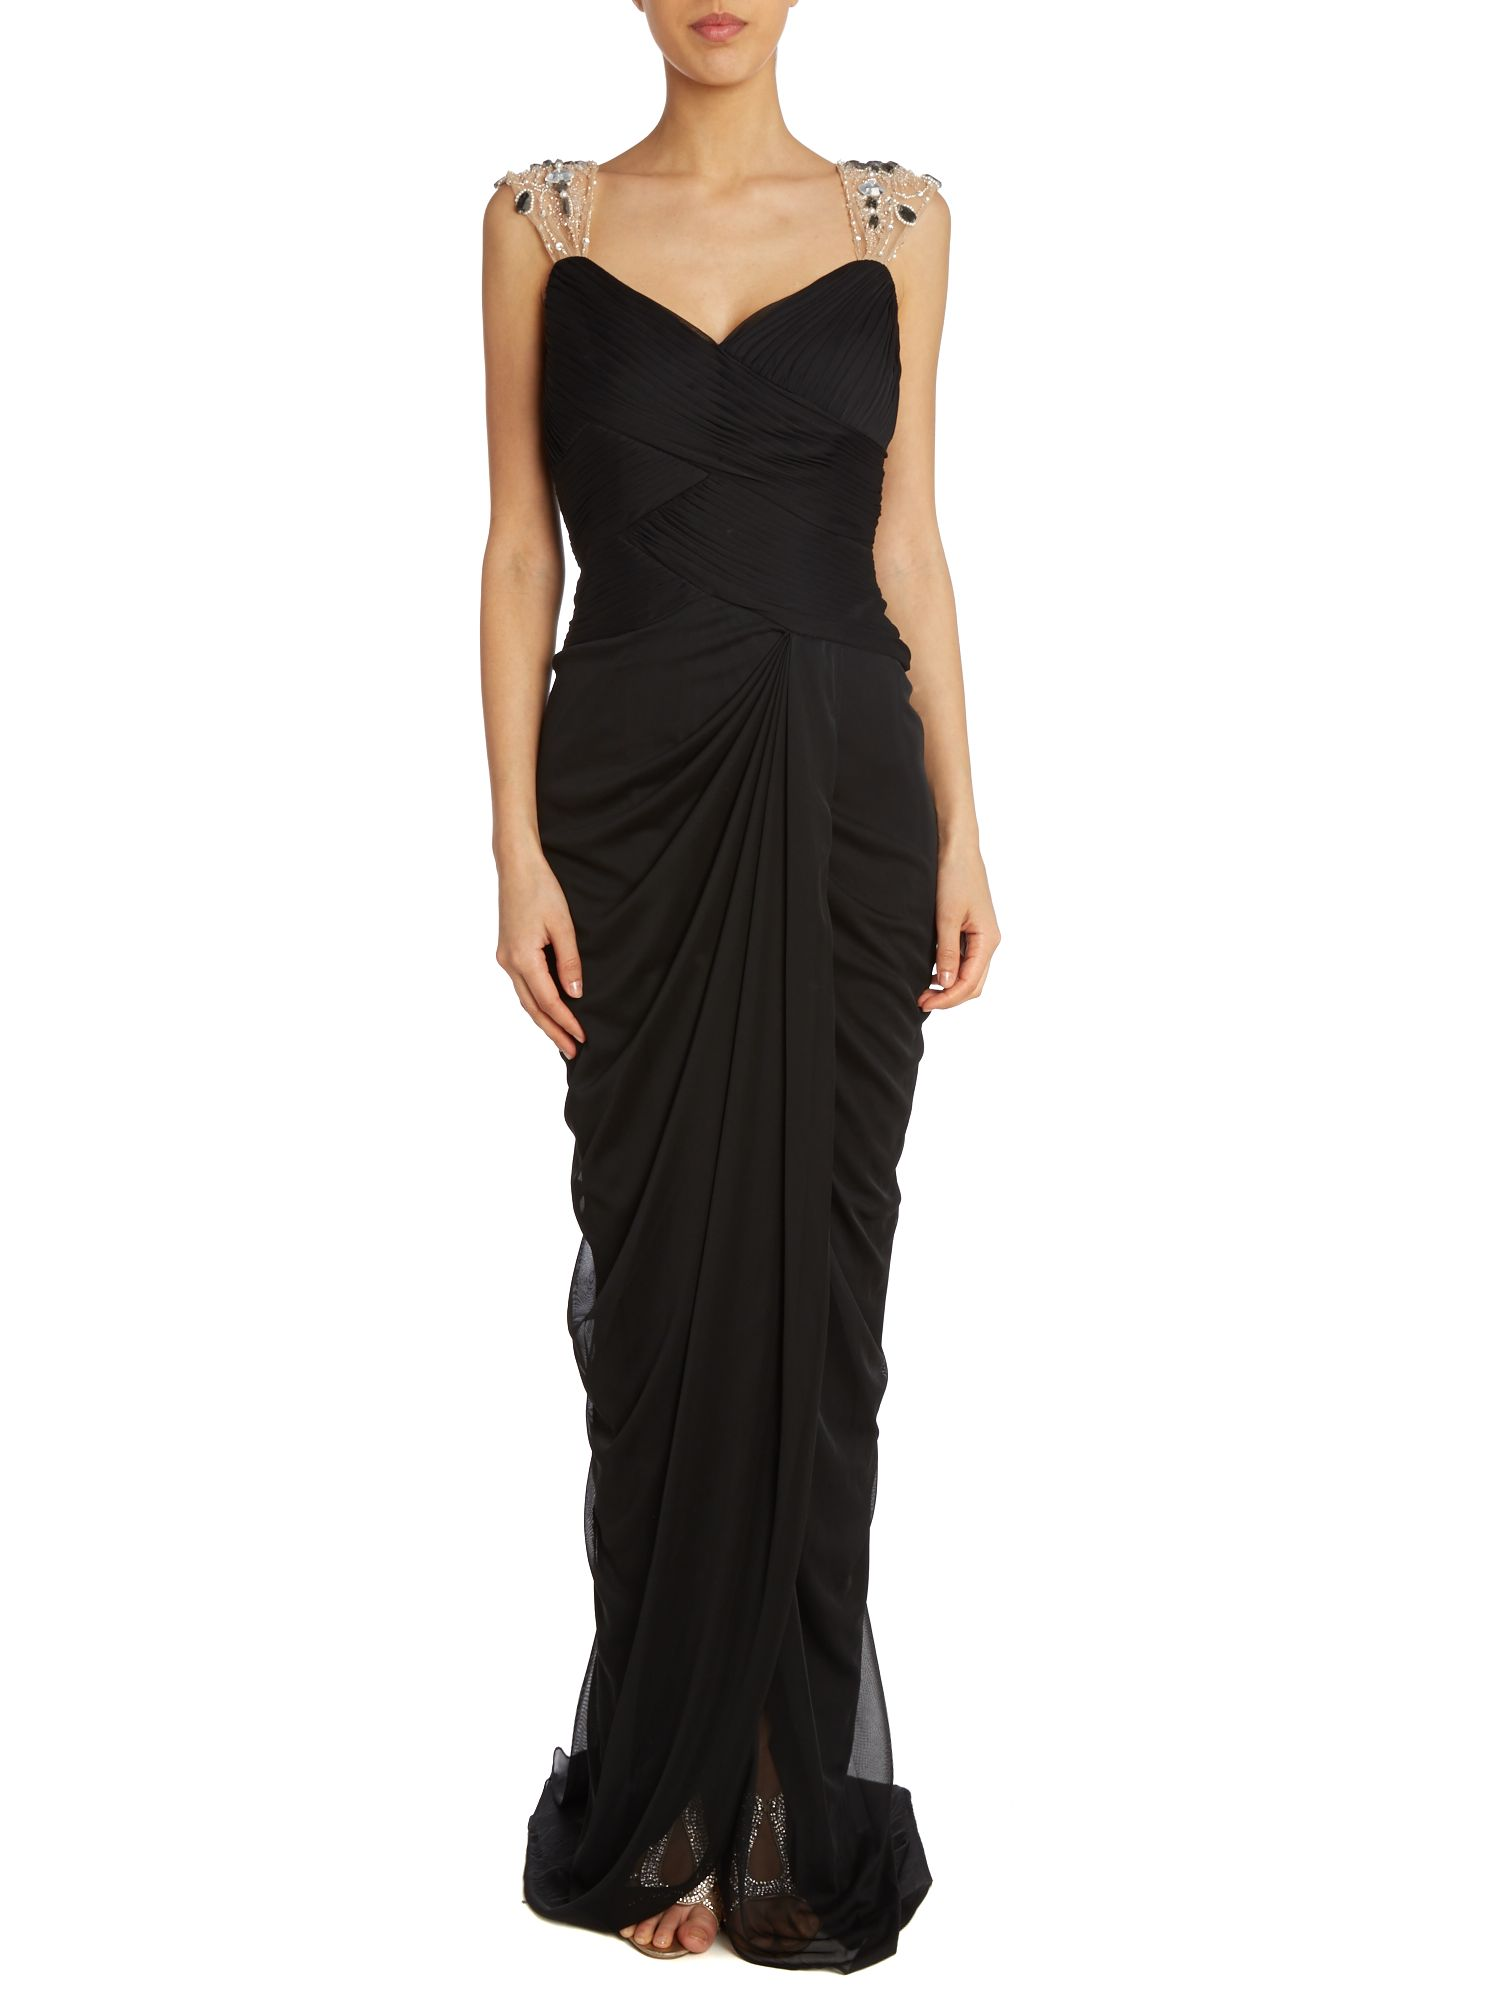 Embelished V-Neck Drape Dress